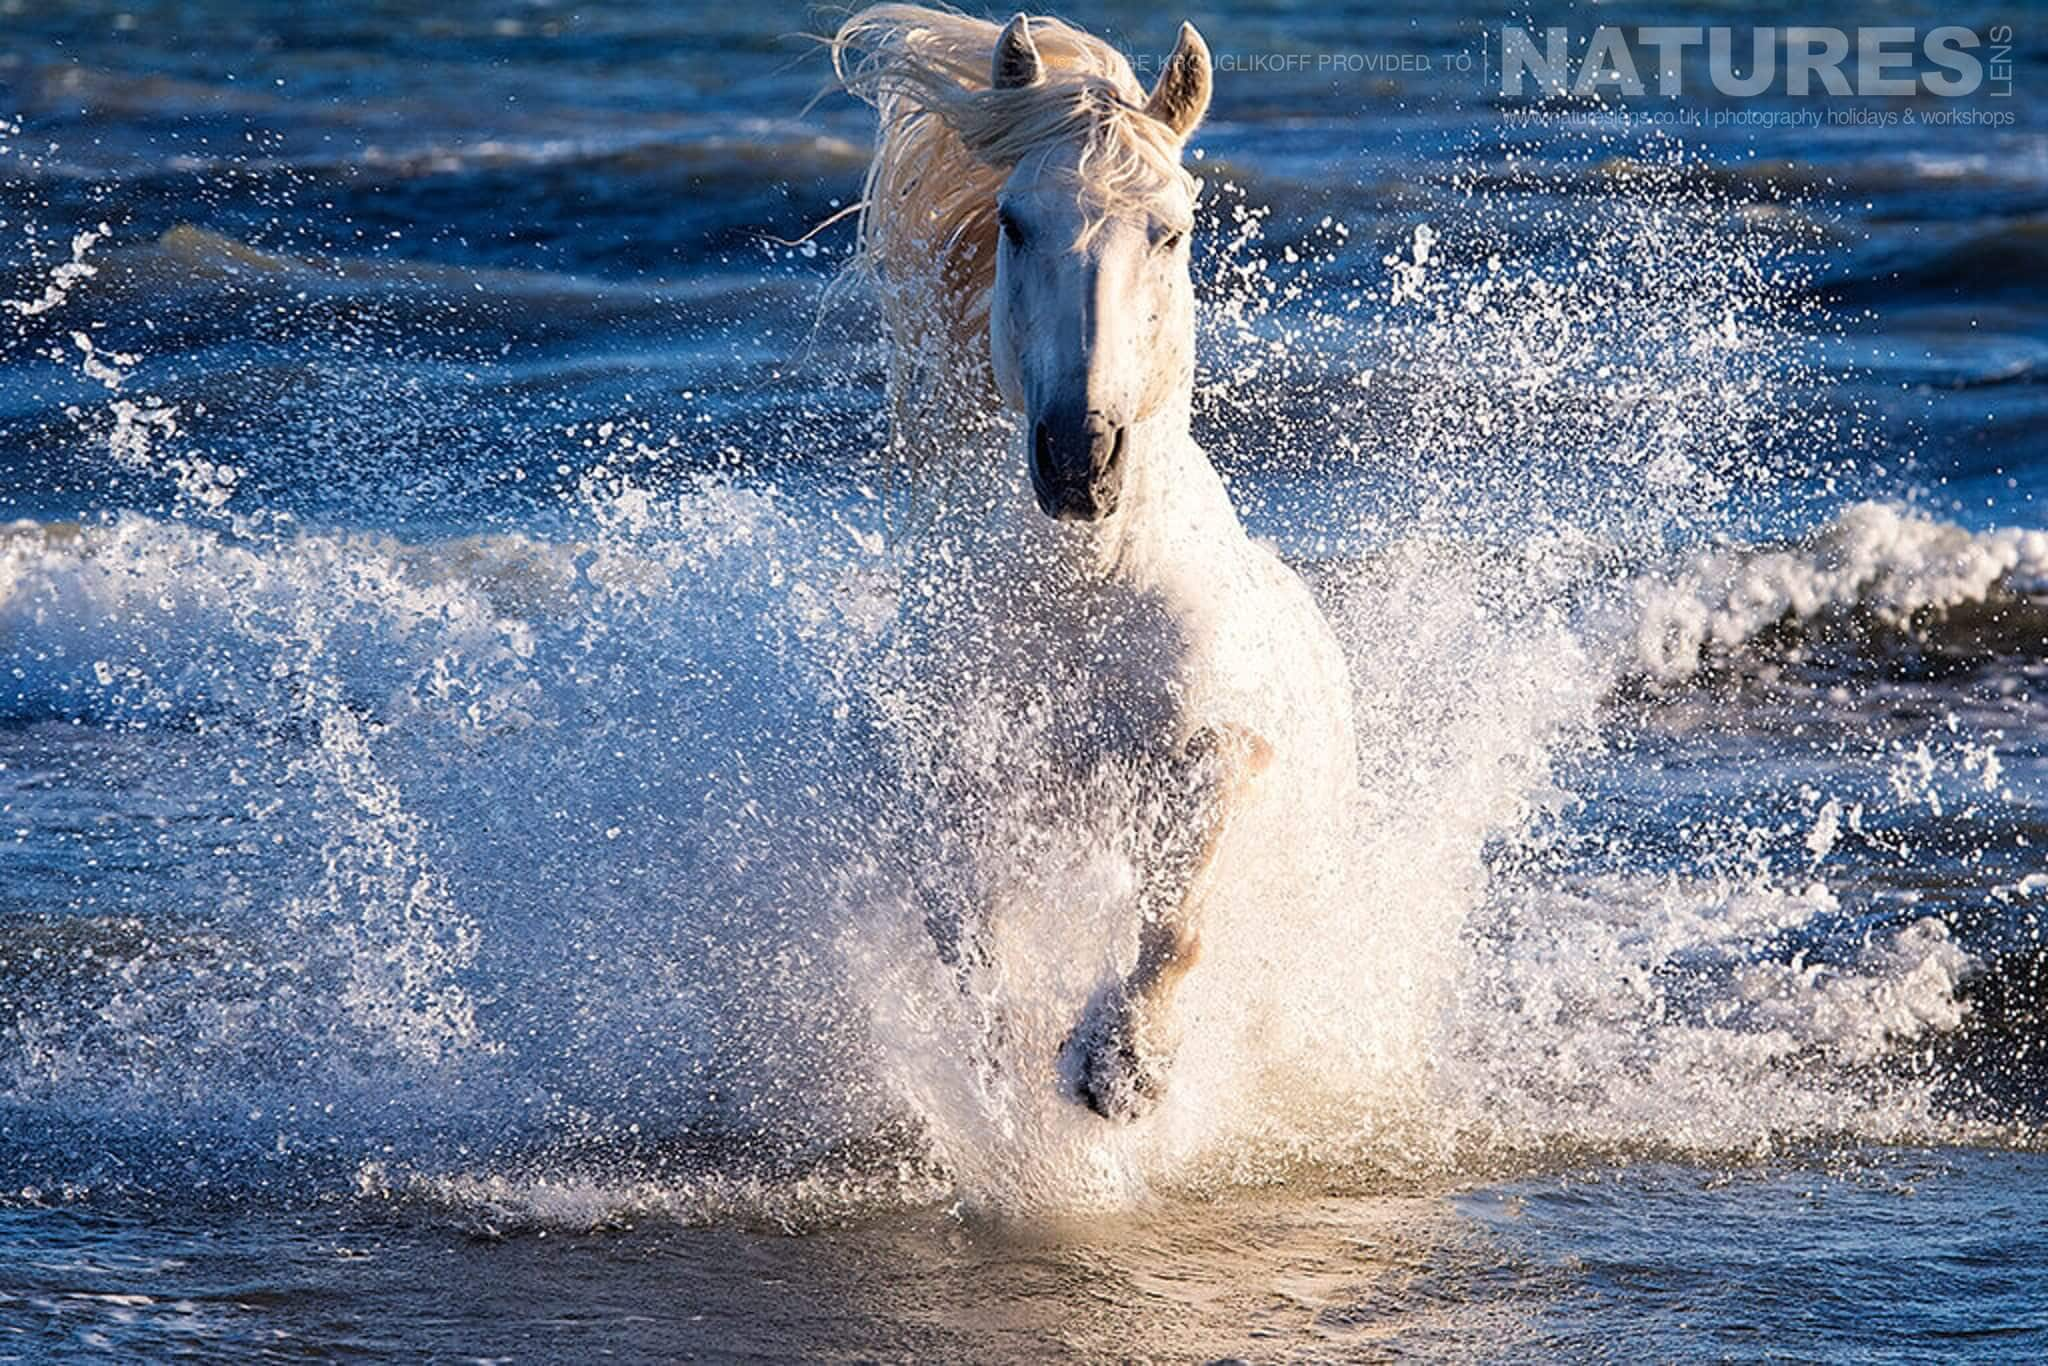 Wild white horse throwing up spray as he runs through the surf typical of the type of image that may be captured during the NaturesLens Wild White Horses of the Camargue Photography Holiday